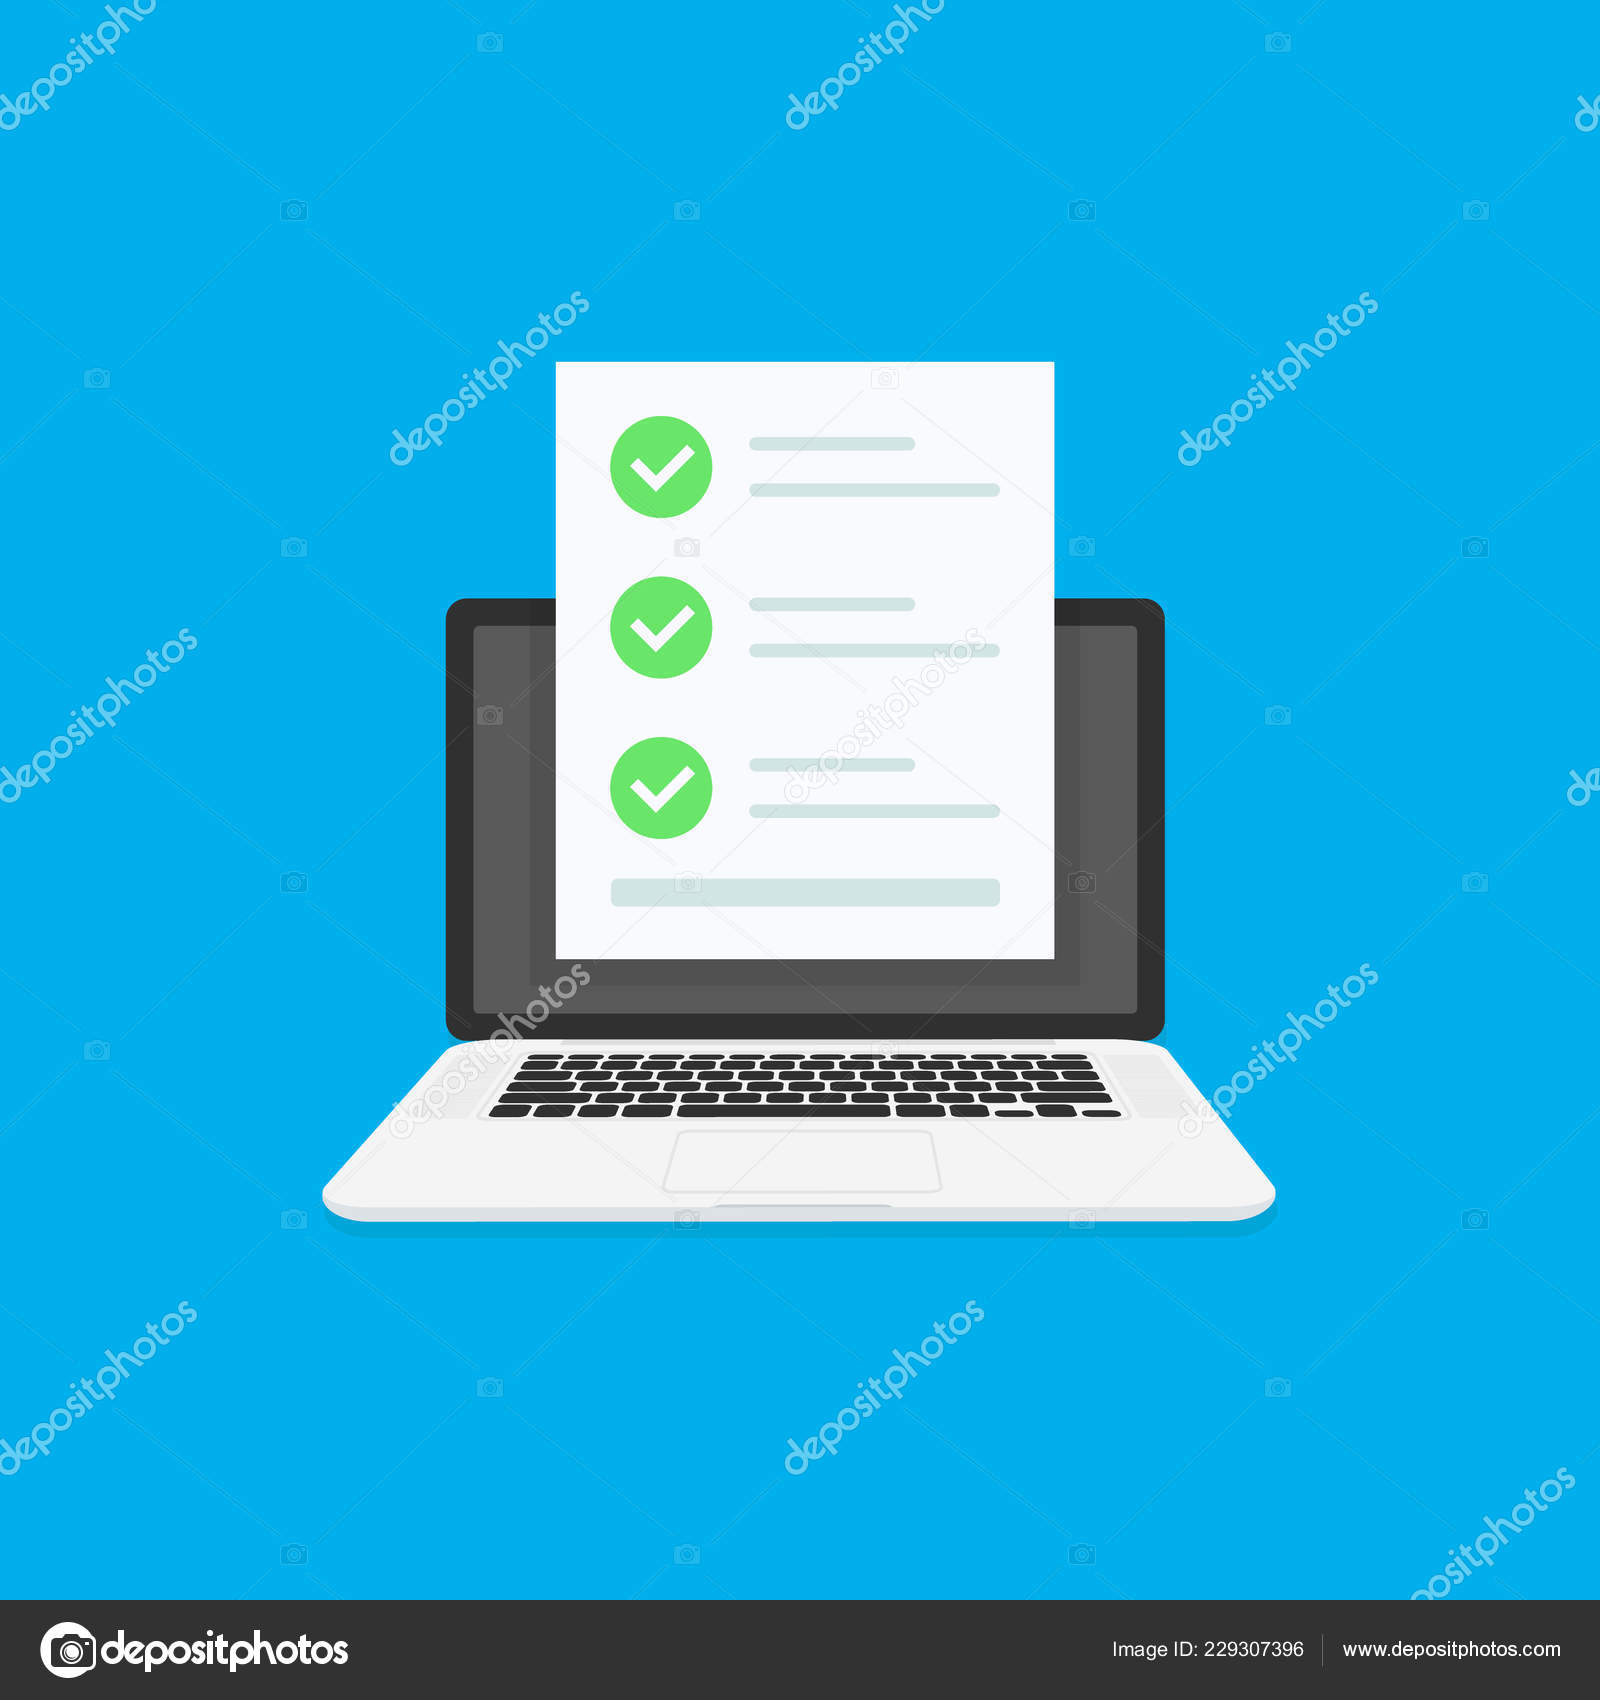 Online Exam Laptop With Checklist Taking Test Choosing Answer Questionnaire Form Education Concept Flat Cartoon Design Vector Illustration On Background Stock Vector C Sergii19 I Ua 229307396